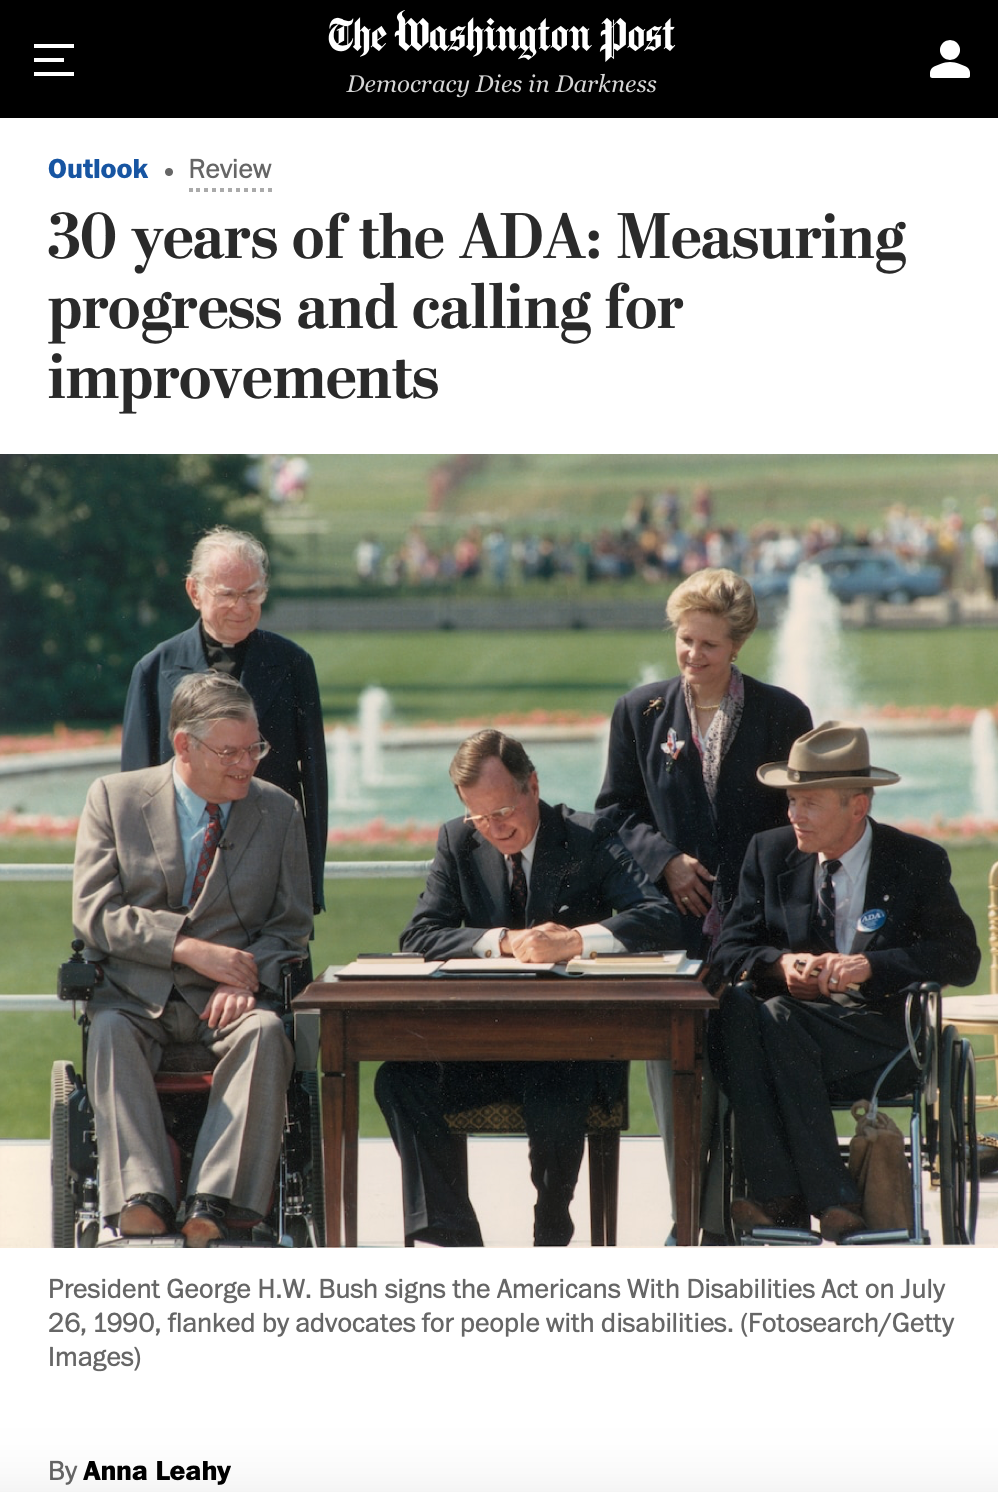 The Washington Post, 30 Years of the ADA, with photo of President George Bush and four others at table for bill signing